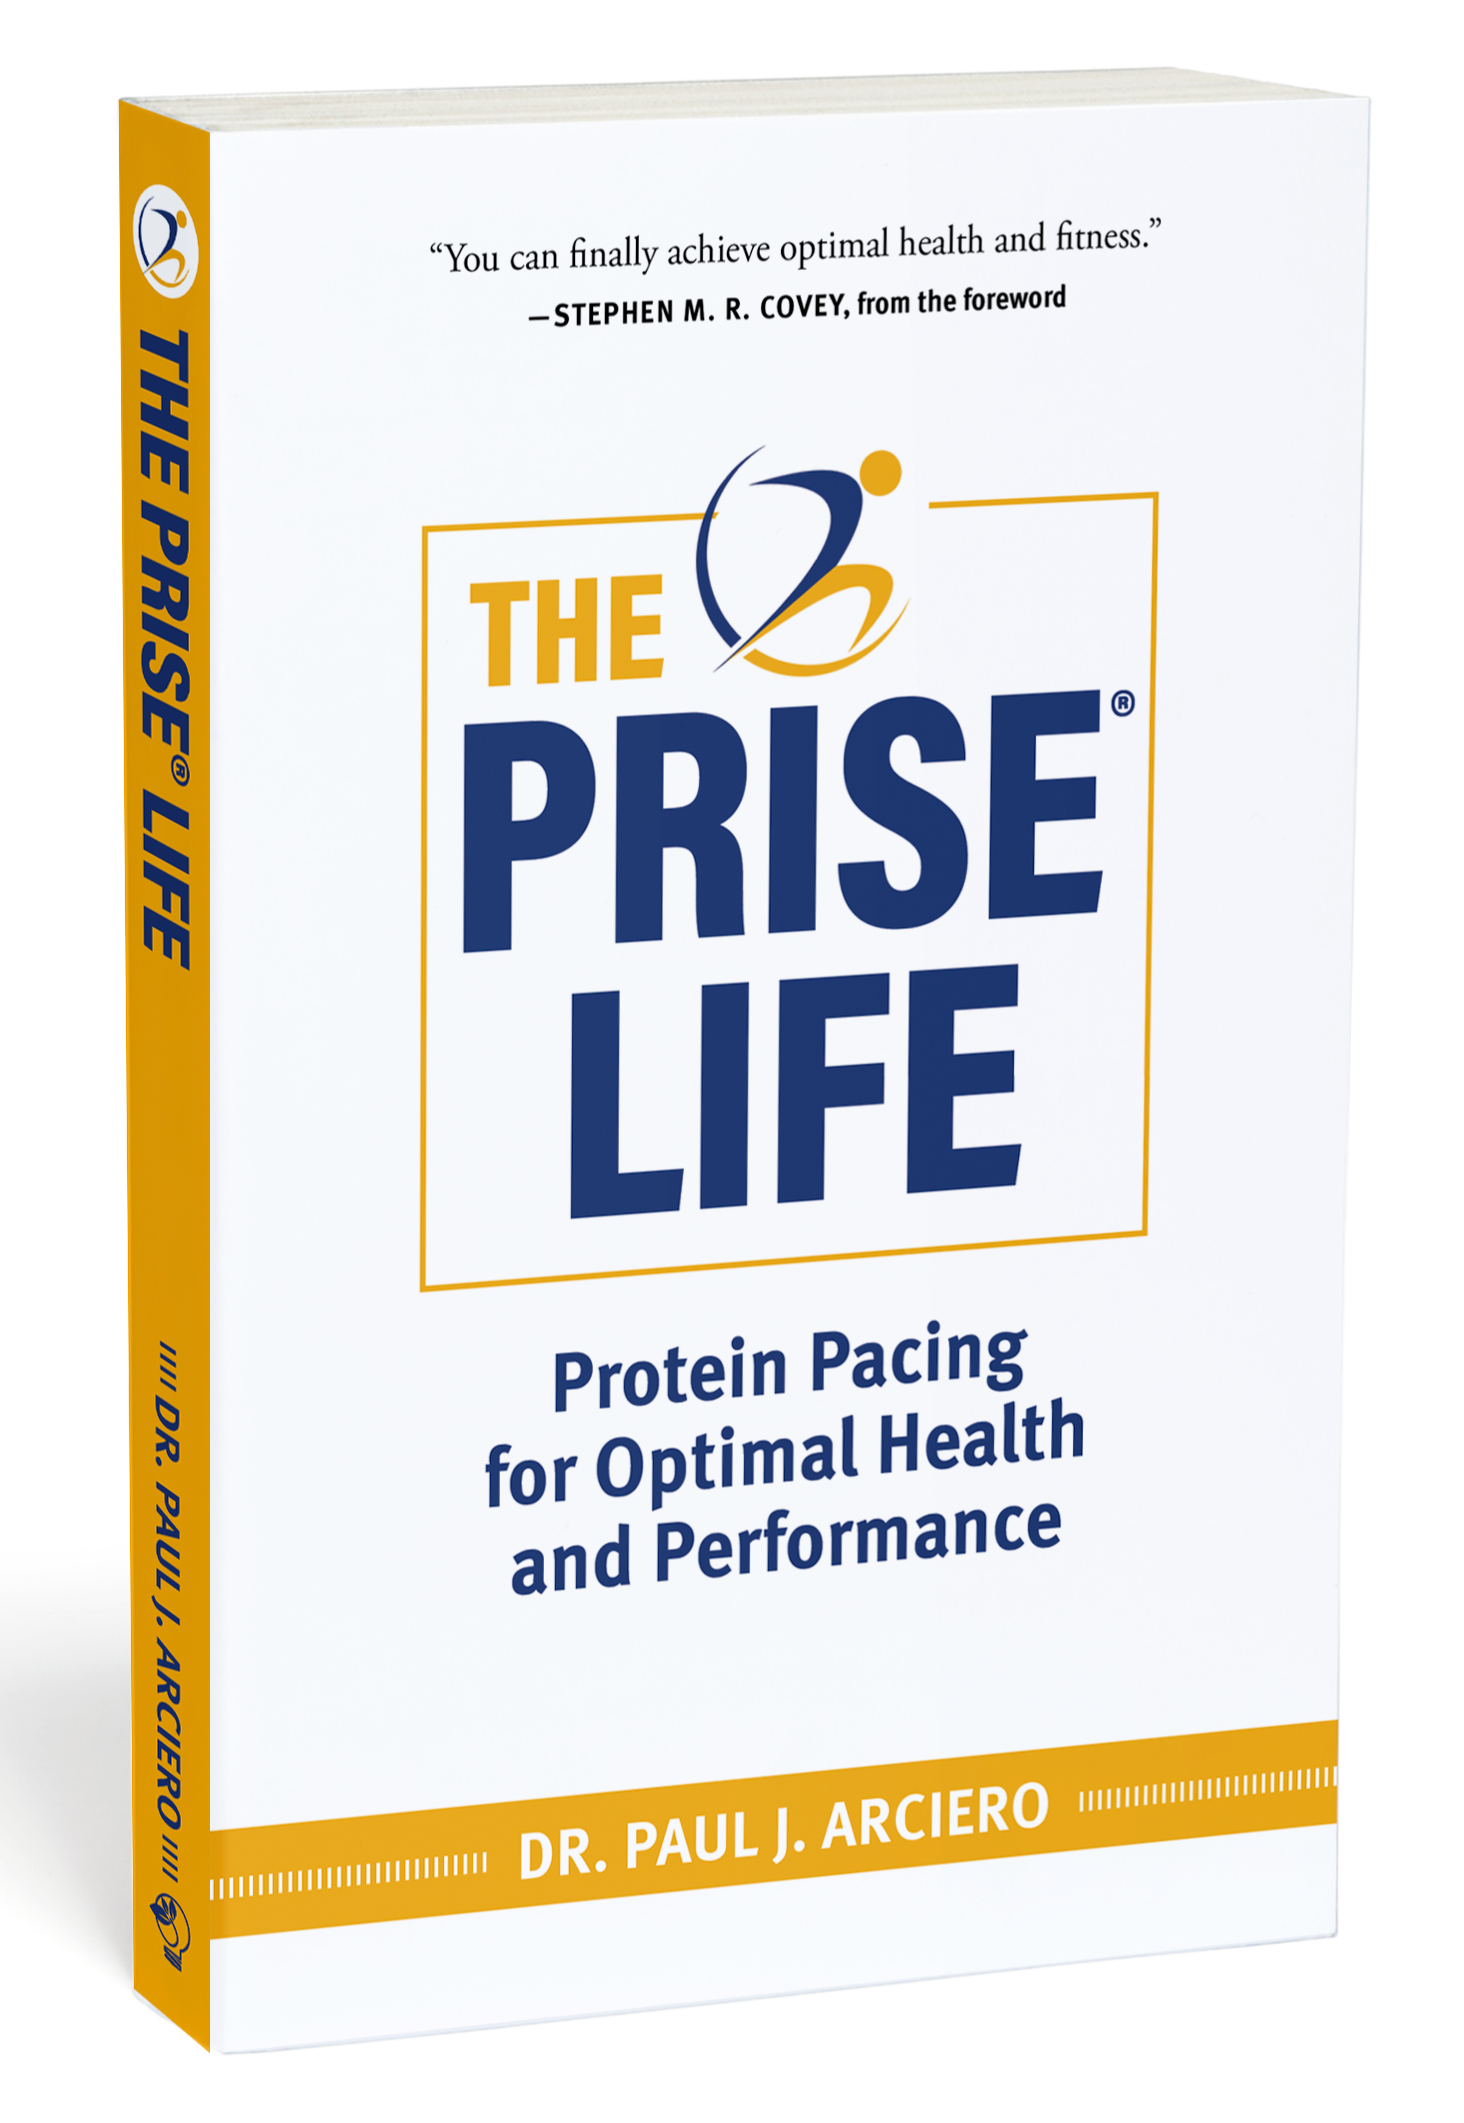 prise life book launches